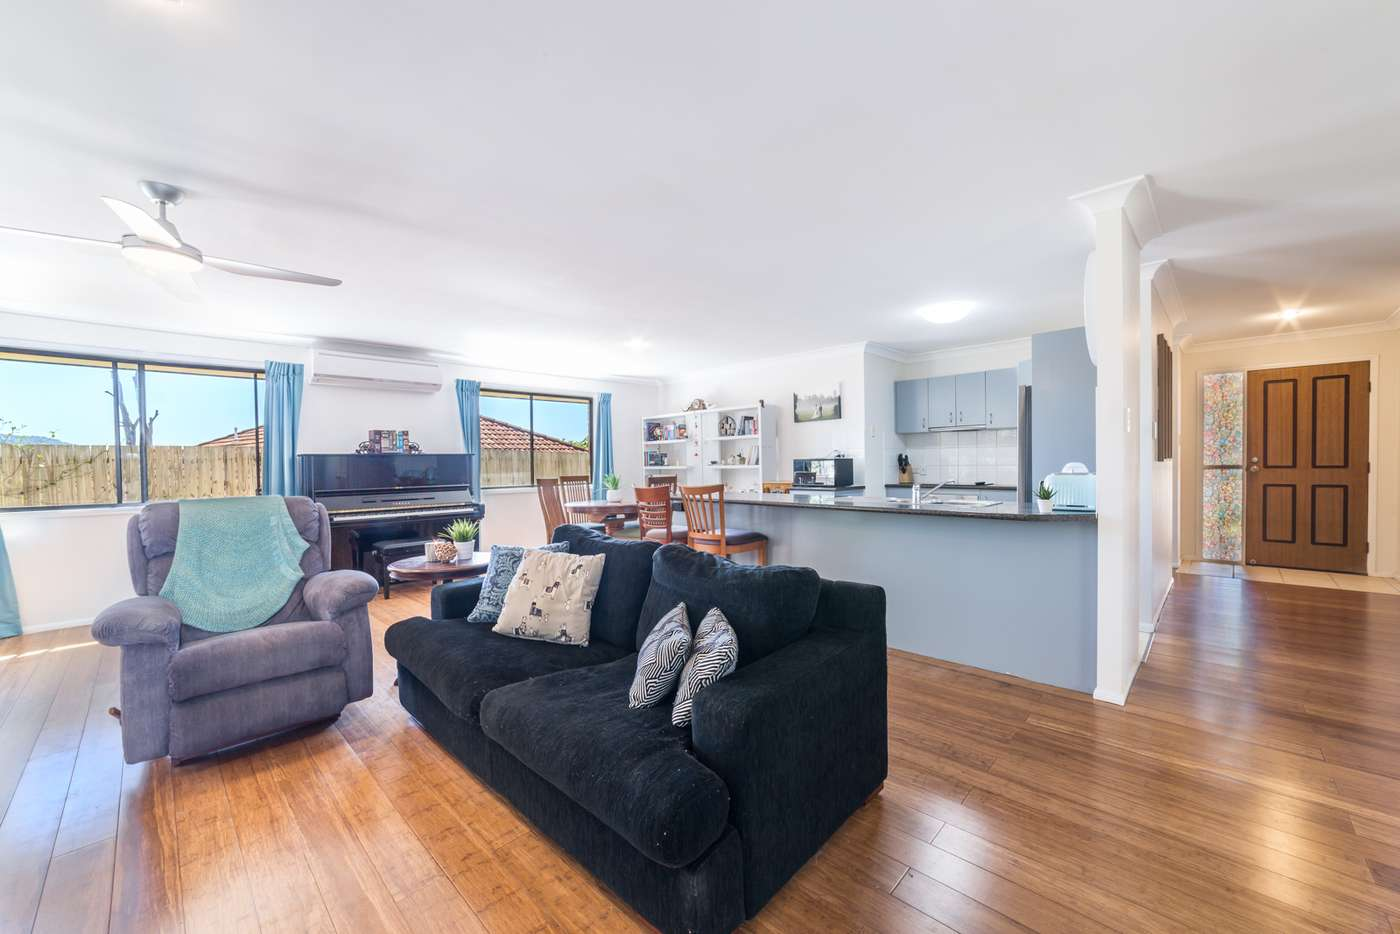 Main view of Homely house listing, 13/44-48 McLaren Road, Nerang QLD 4211